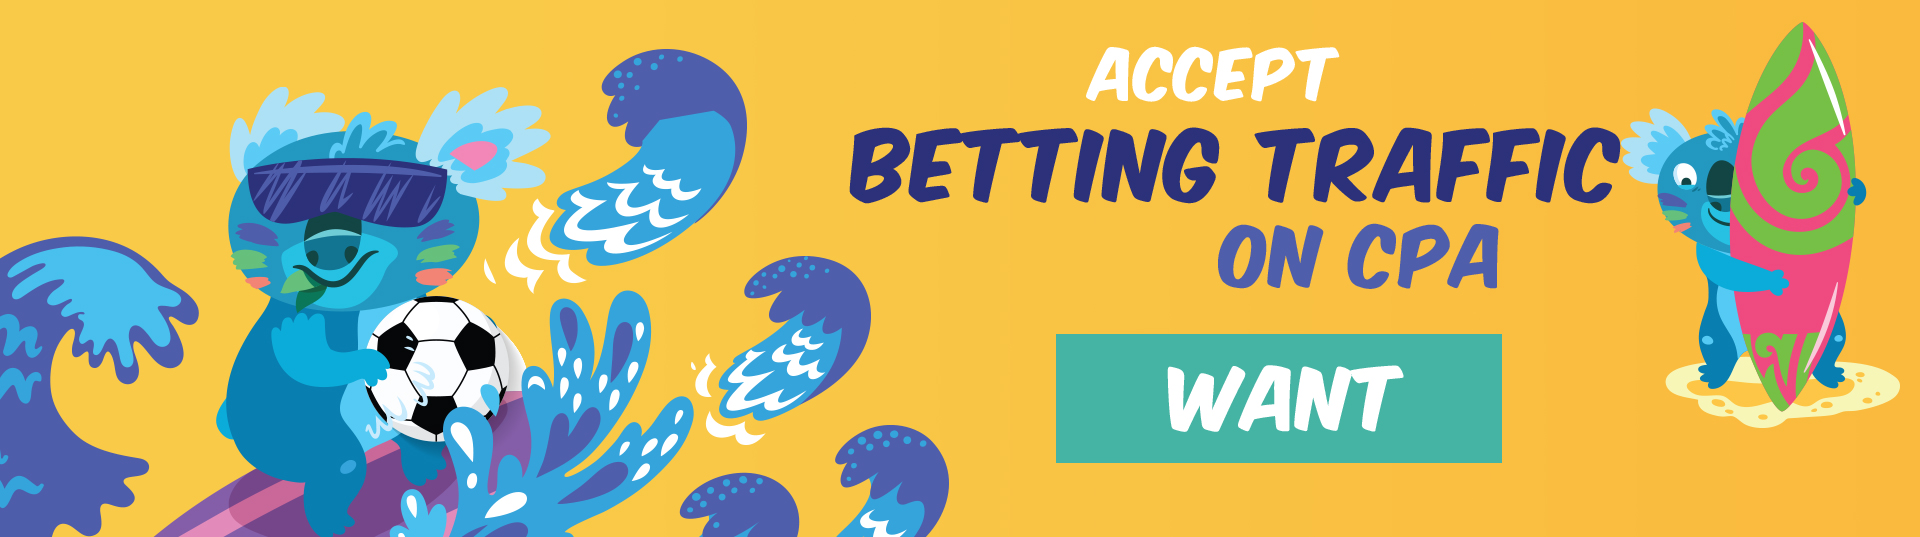 Want CPA for Betting